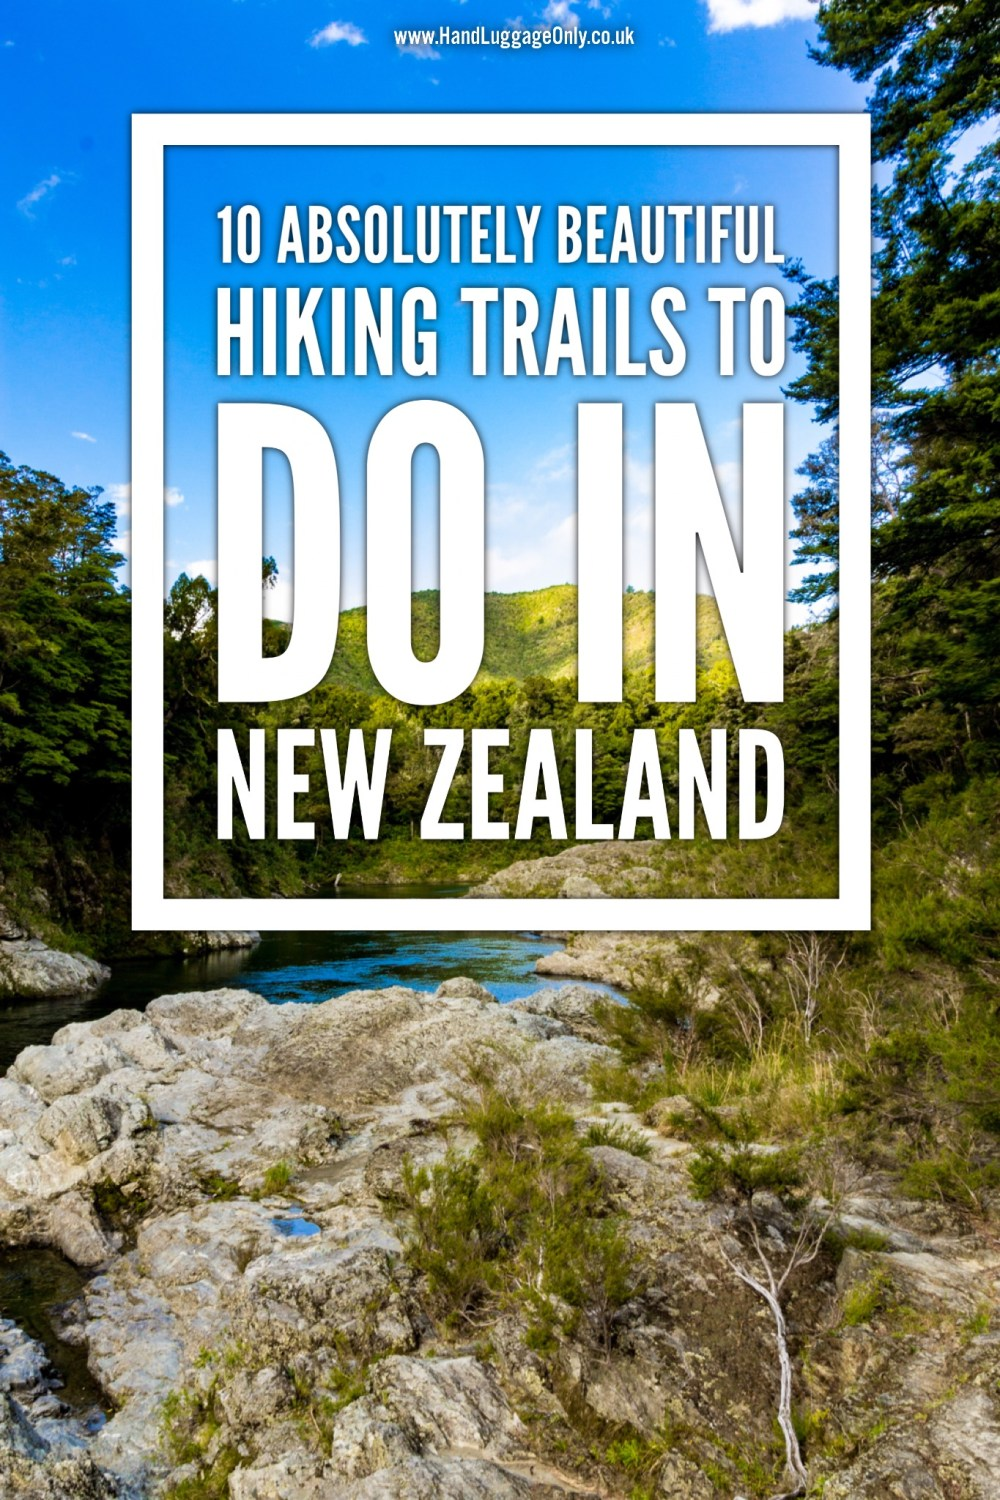 10 Absolutely Beautiful Hiking Trails You Have To Do In New Zealand (2)